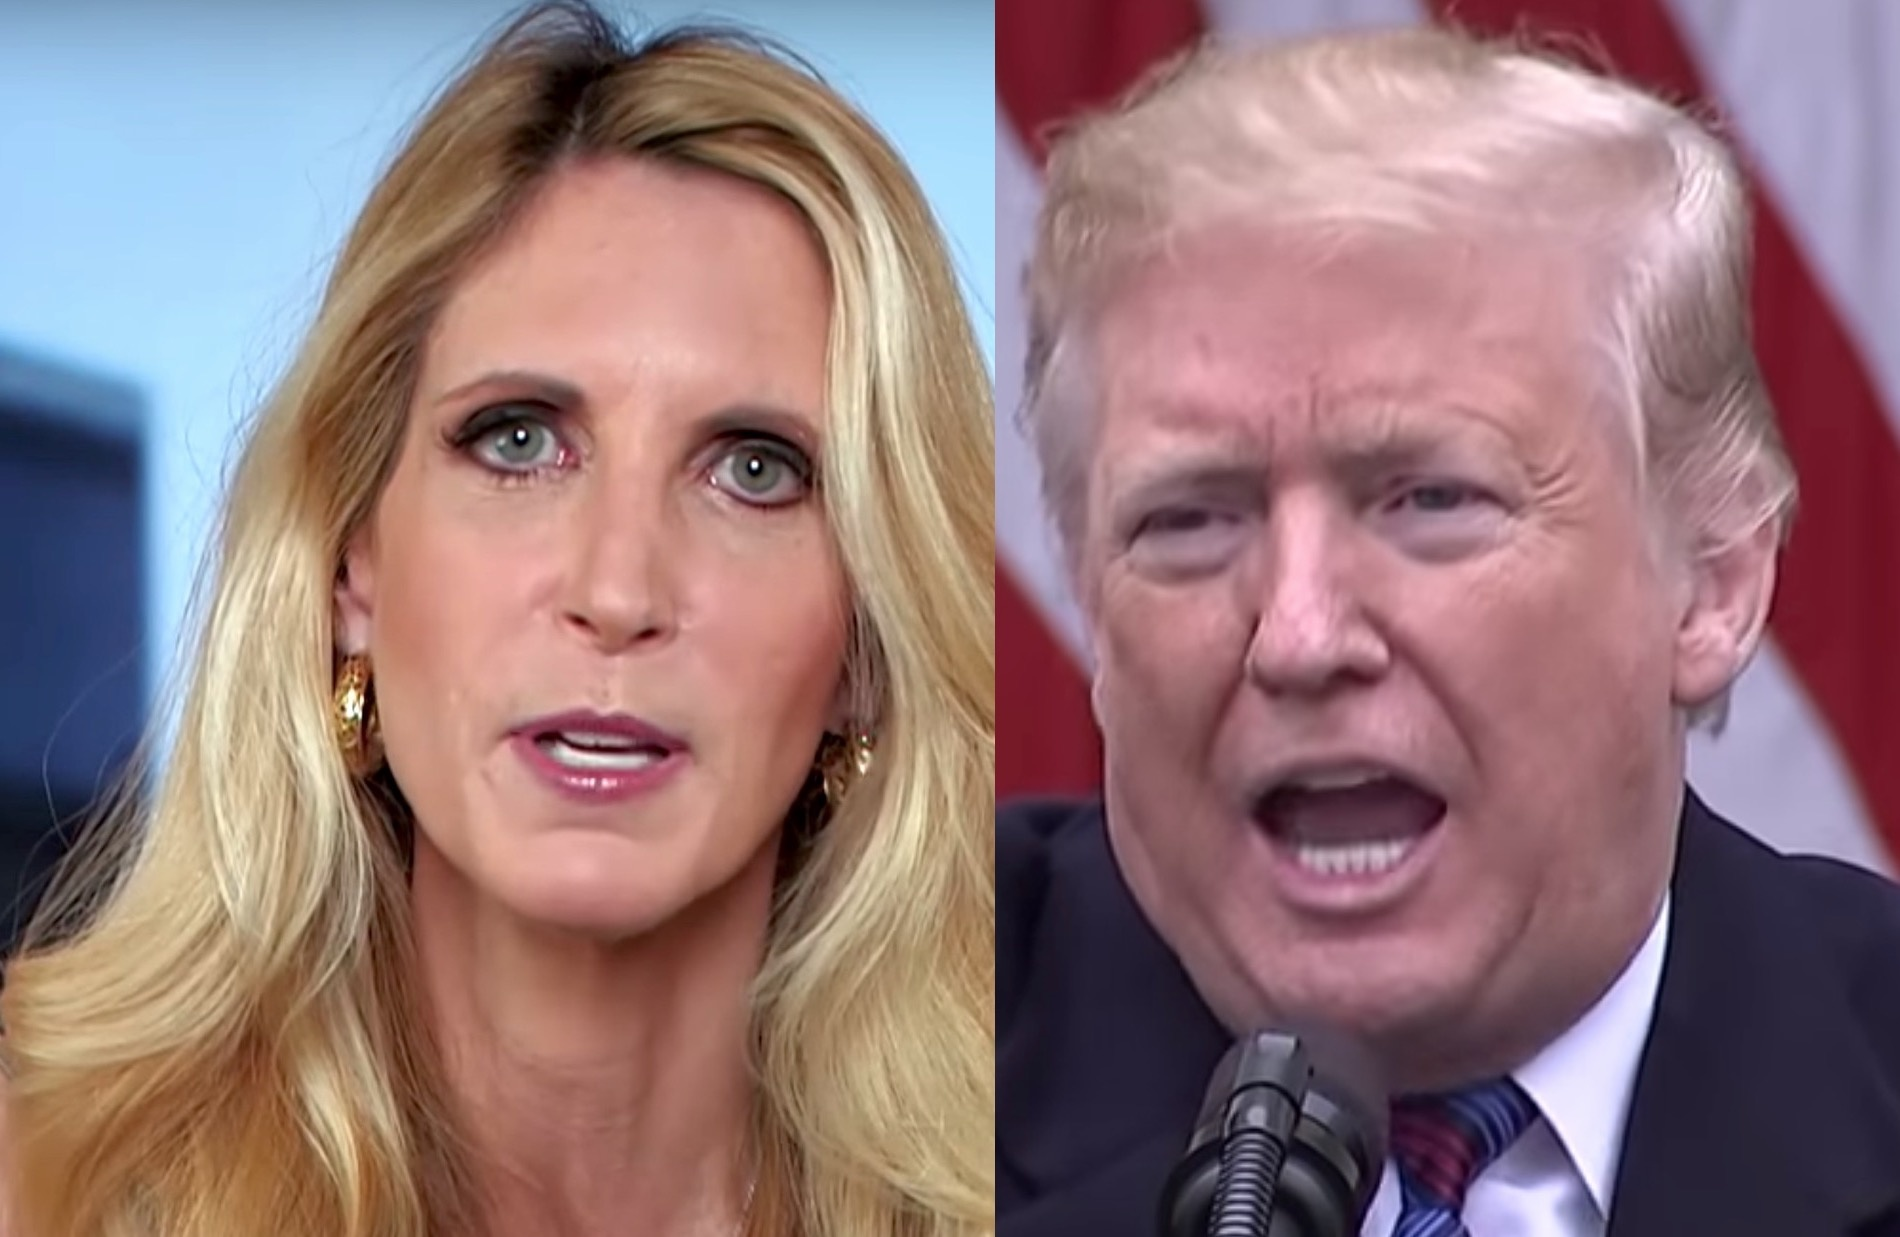 Trump says Ann Coulter is 'off the reservation' over border wall criticism — she responds furiously